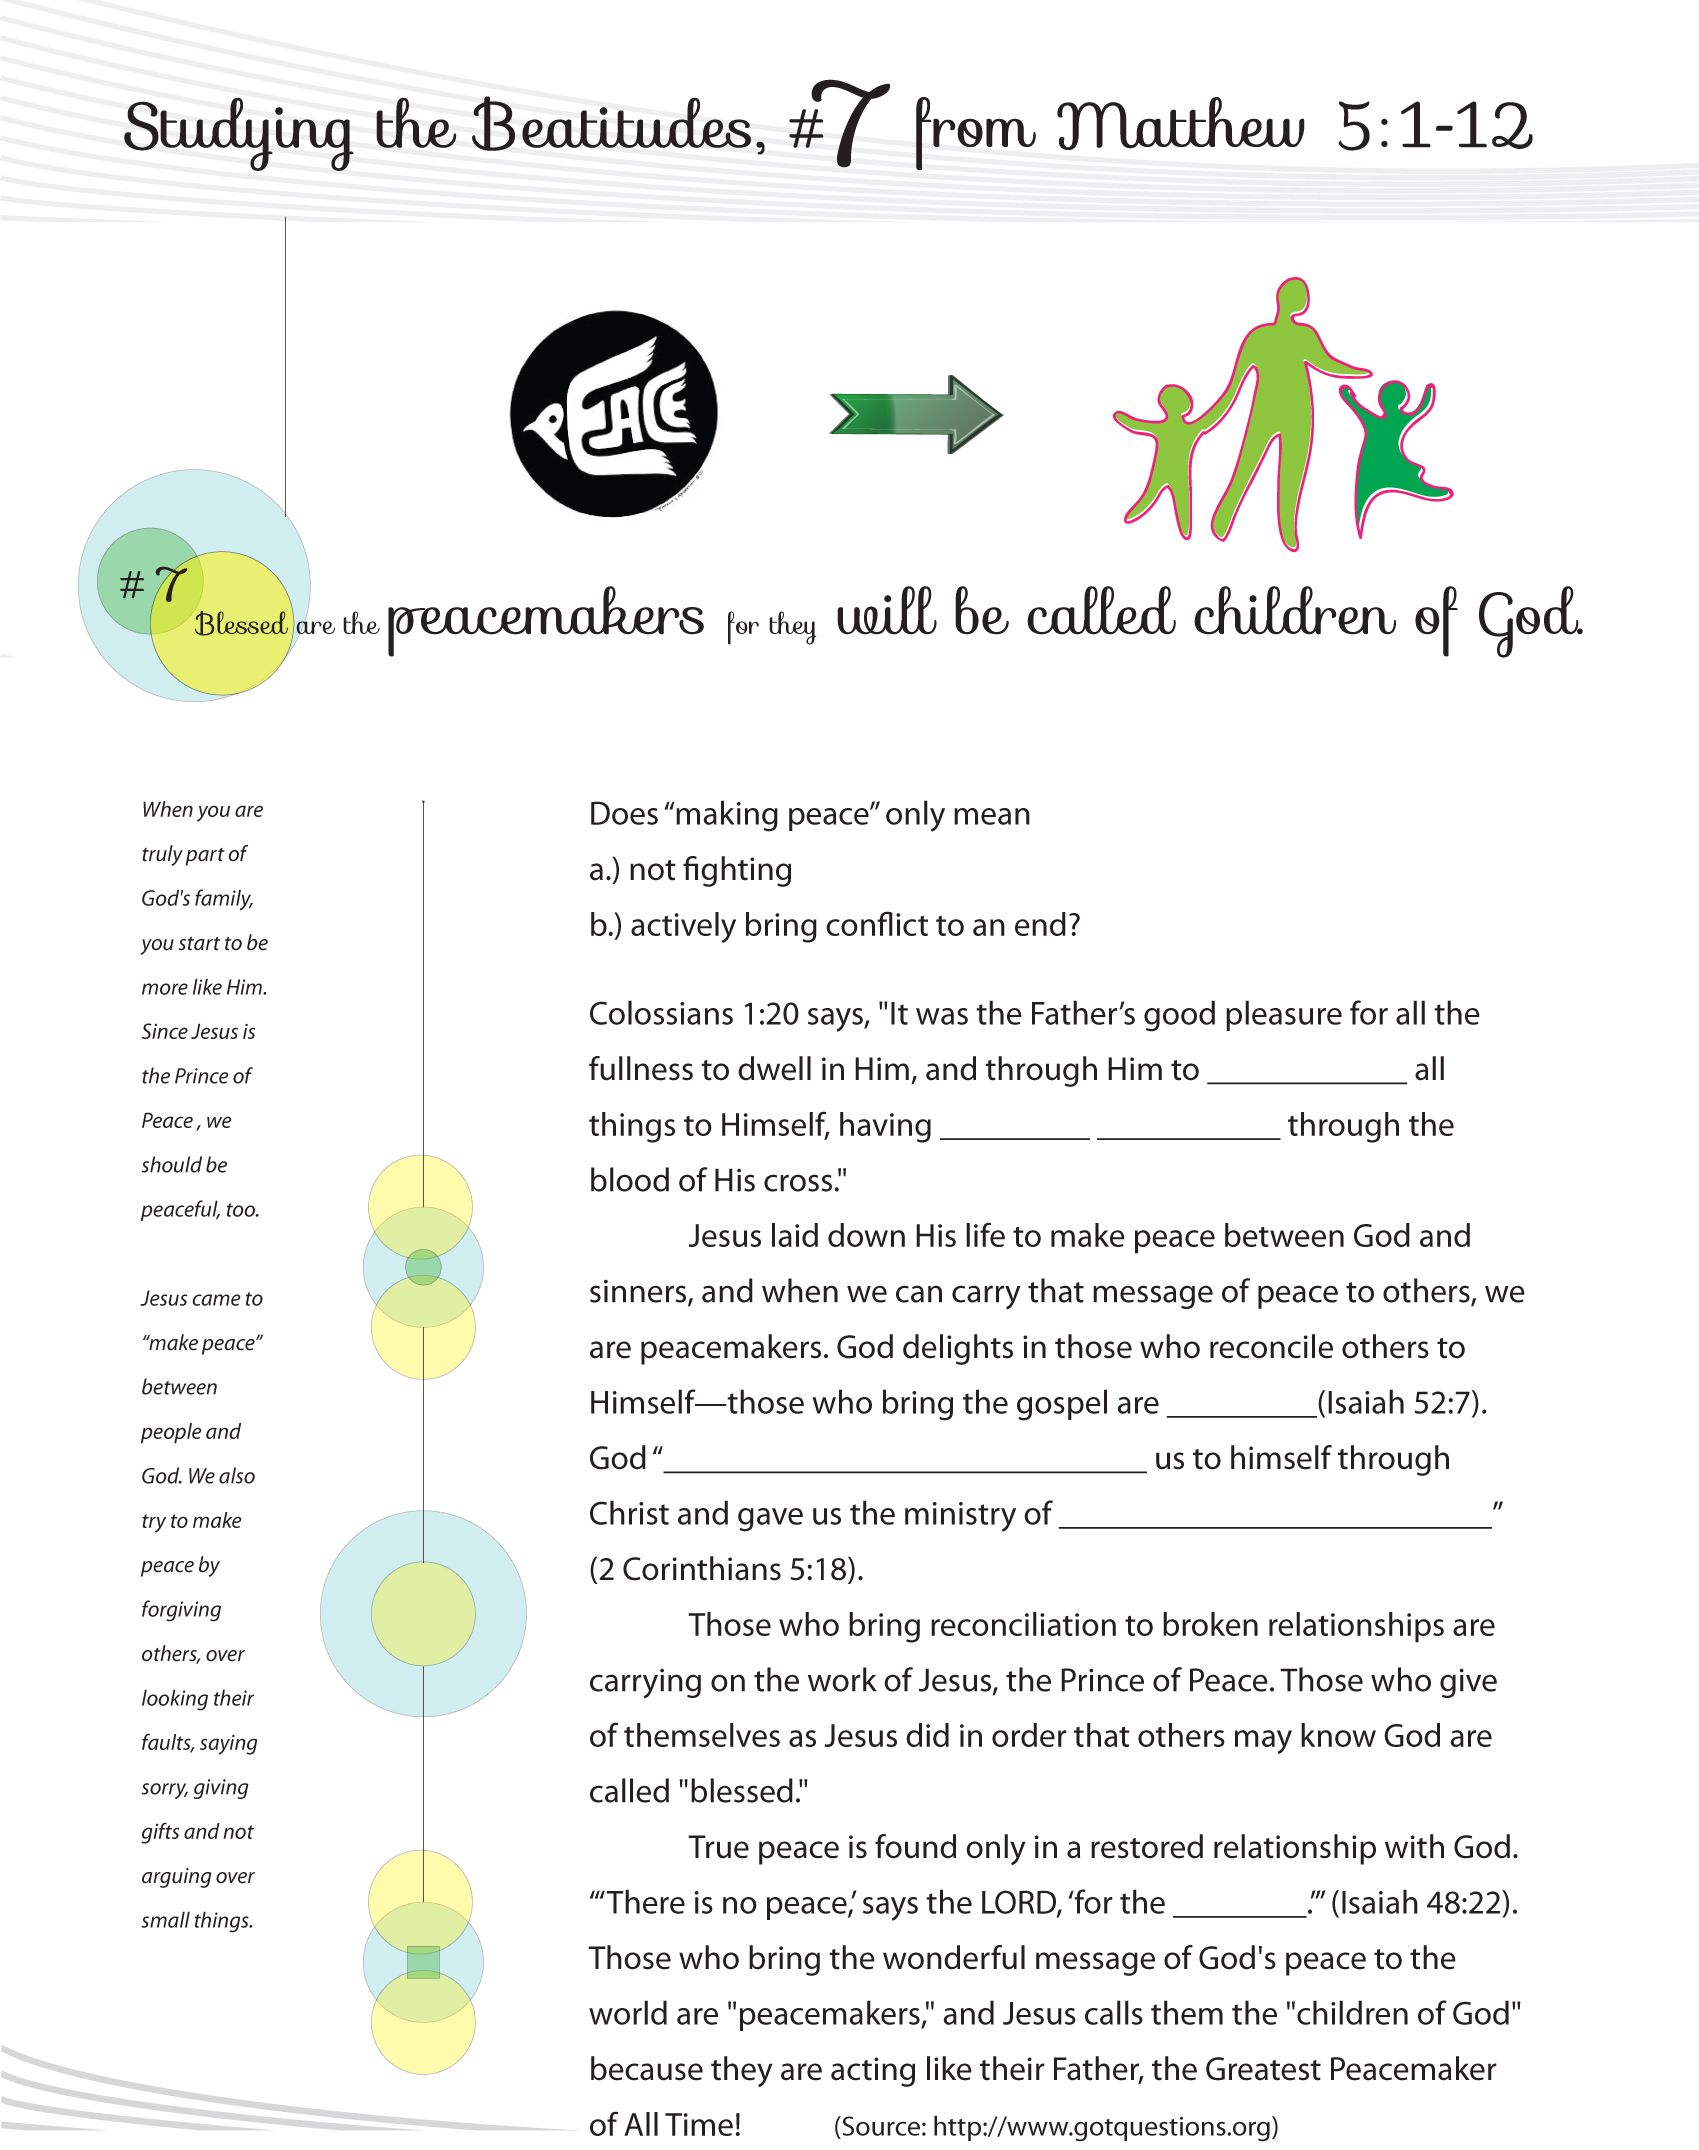 Worksheet To Teach The 7th Beatitude Of The Christian Life From Jesus Teaching His Famous Sermon